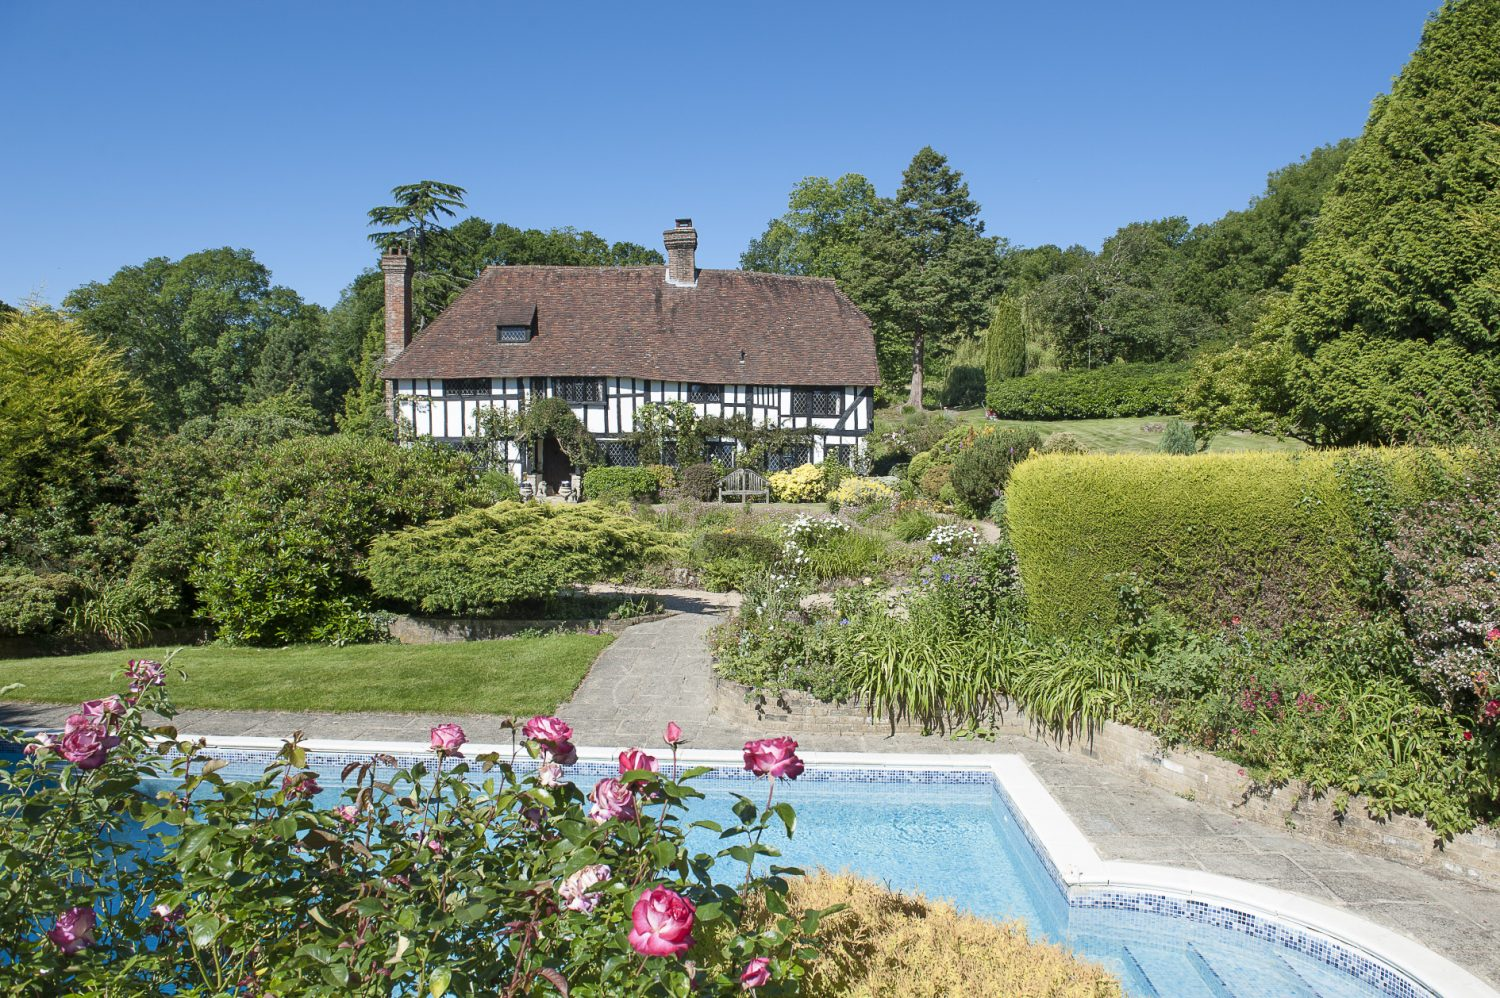 Pennybridge has 55 rolling acres of grass pasture but the house is set in a beautiful, blowsy cottage garden looking across the lawns to the swimming pool